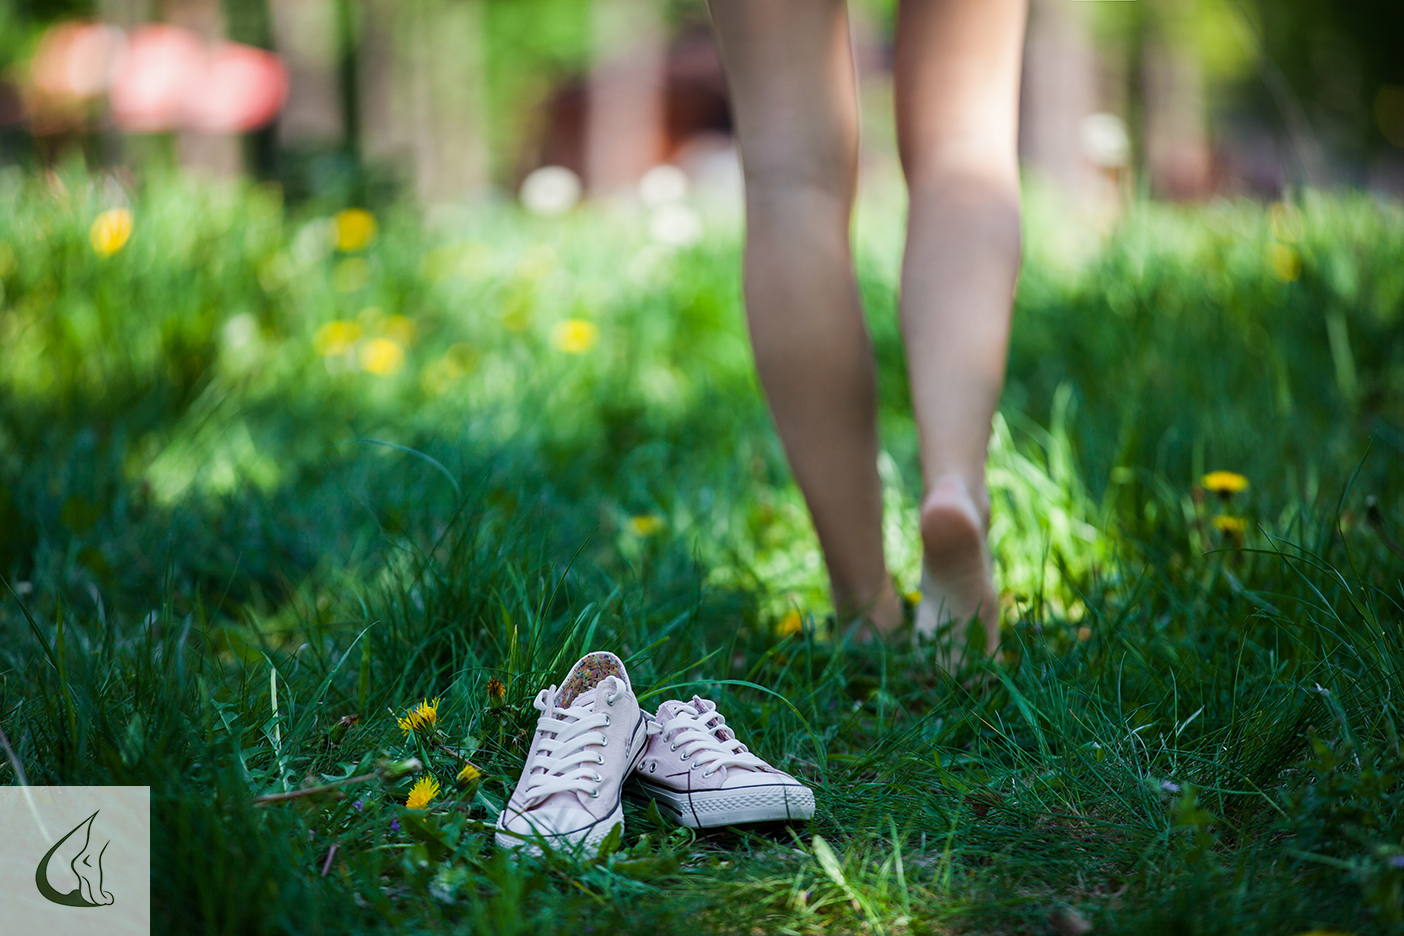 Woman walking barefoot on the grass, pink shoes in focus, shallo